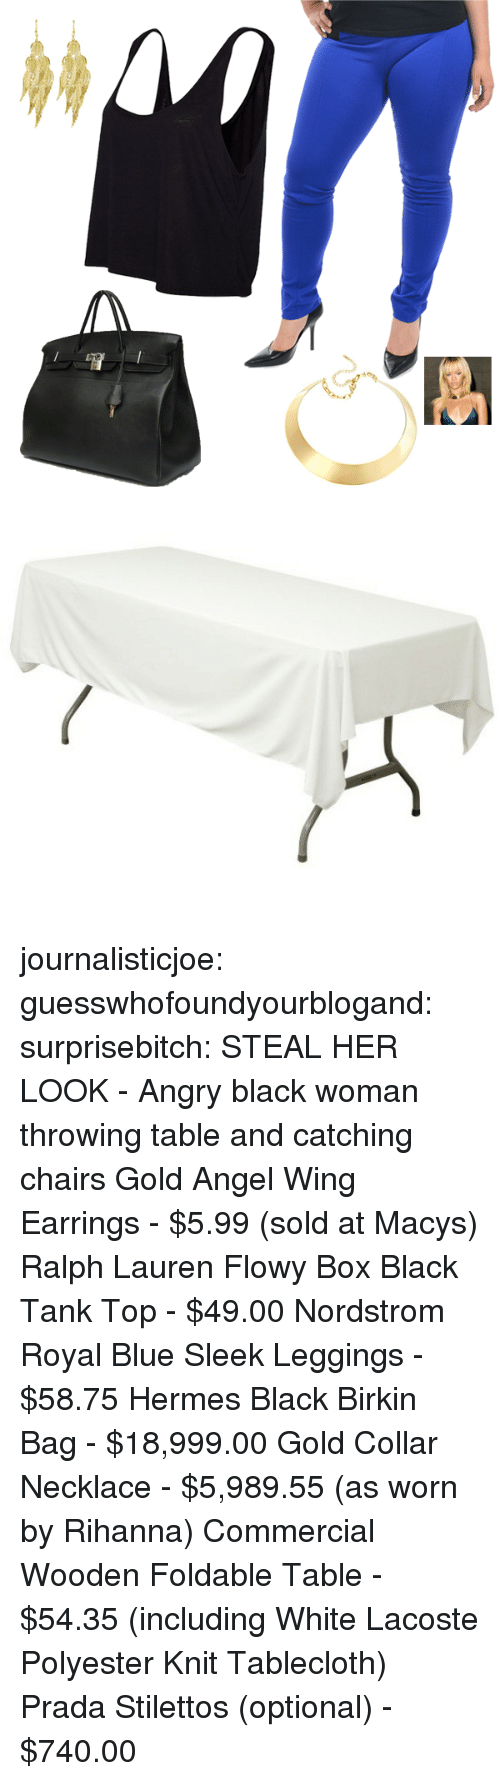 Ralph Lauren: journalisticjoe:  guesswhofoundyourblogand:  surprisebitch:  STEAL HER LOOK - Angry black woman throwing table and catching chairs Gold Angel Wing Earrings - $5.99 (sold at Macys) Ralph Lauren Flowy Box Black Tank Top - $49.00 Nordstrom Royal Blue Sleek Leggings - $58.75 Hermes Black Birkin Bag - $18,999.00 Gold Collar Necklace - $5,989.55 (as worn by Rihanna) Commercial Wooden Foldable Table - $54.35 (including White Lacoste Polyester Knit Tablecloth) Prada Stilettos (optional) - $740.00